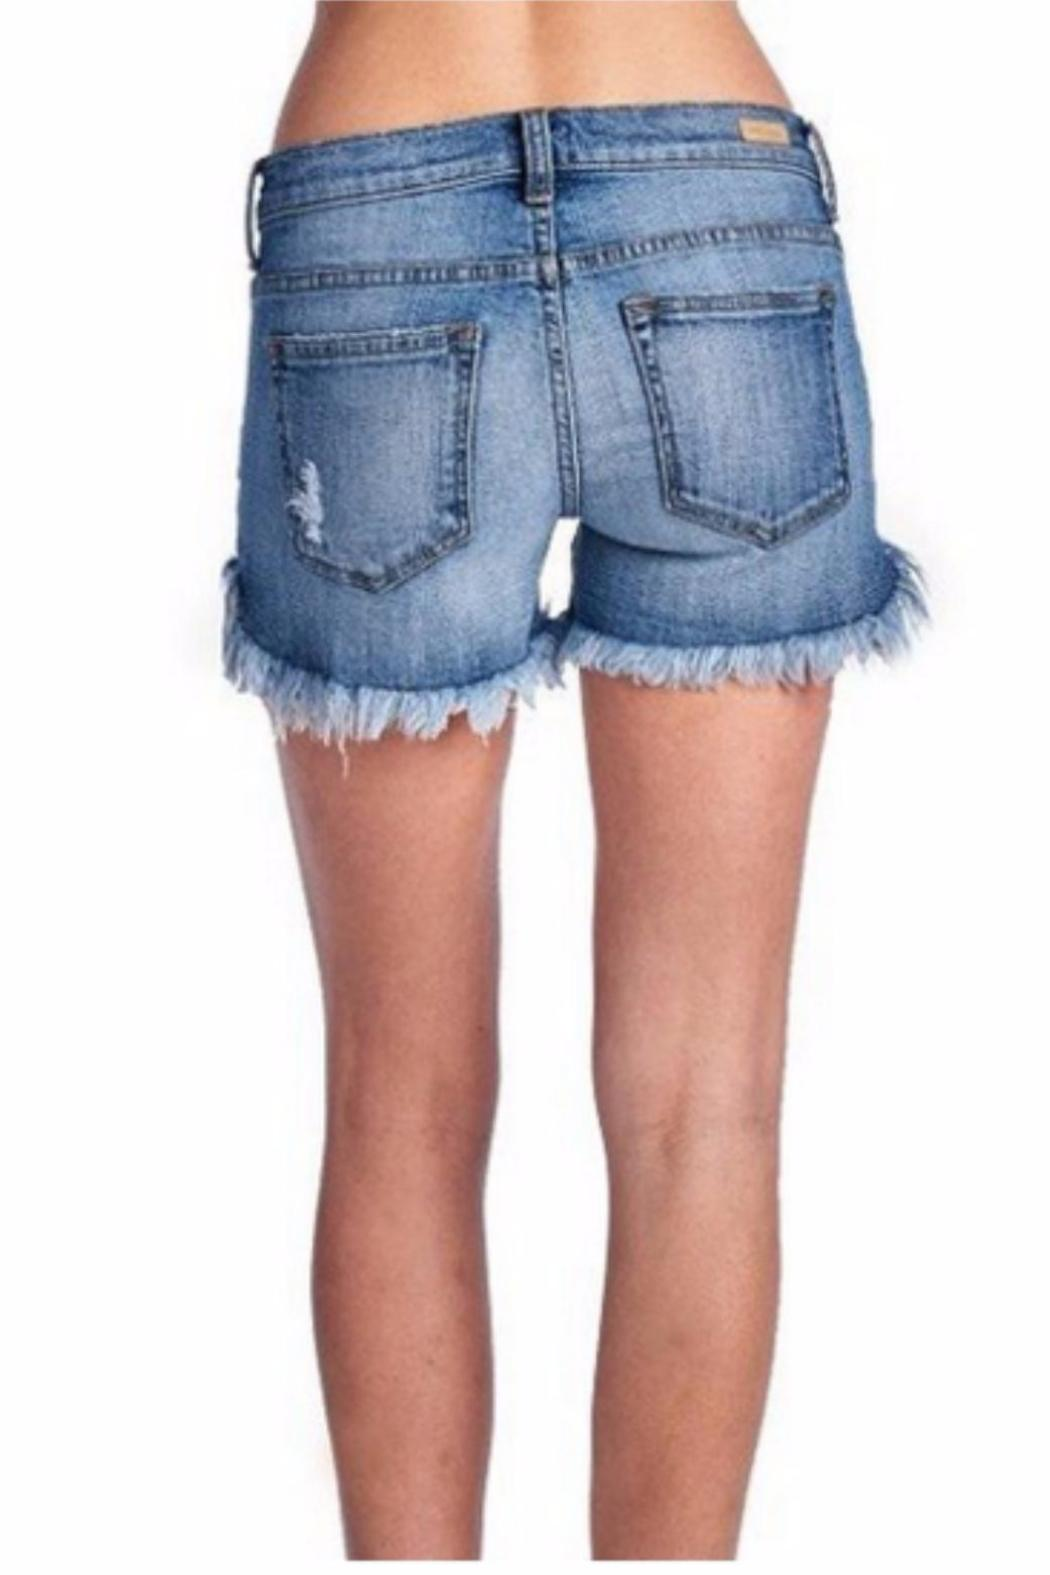 Sneak Peek Denim & Lace Shorts from Florida by Goldfinch Boutique ...